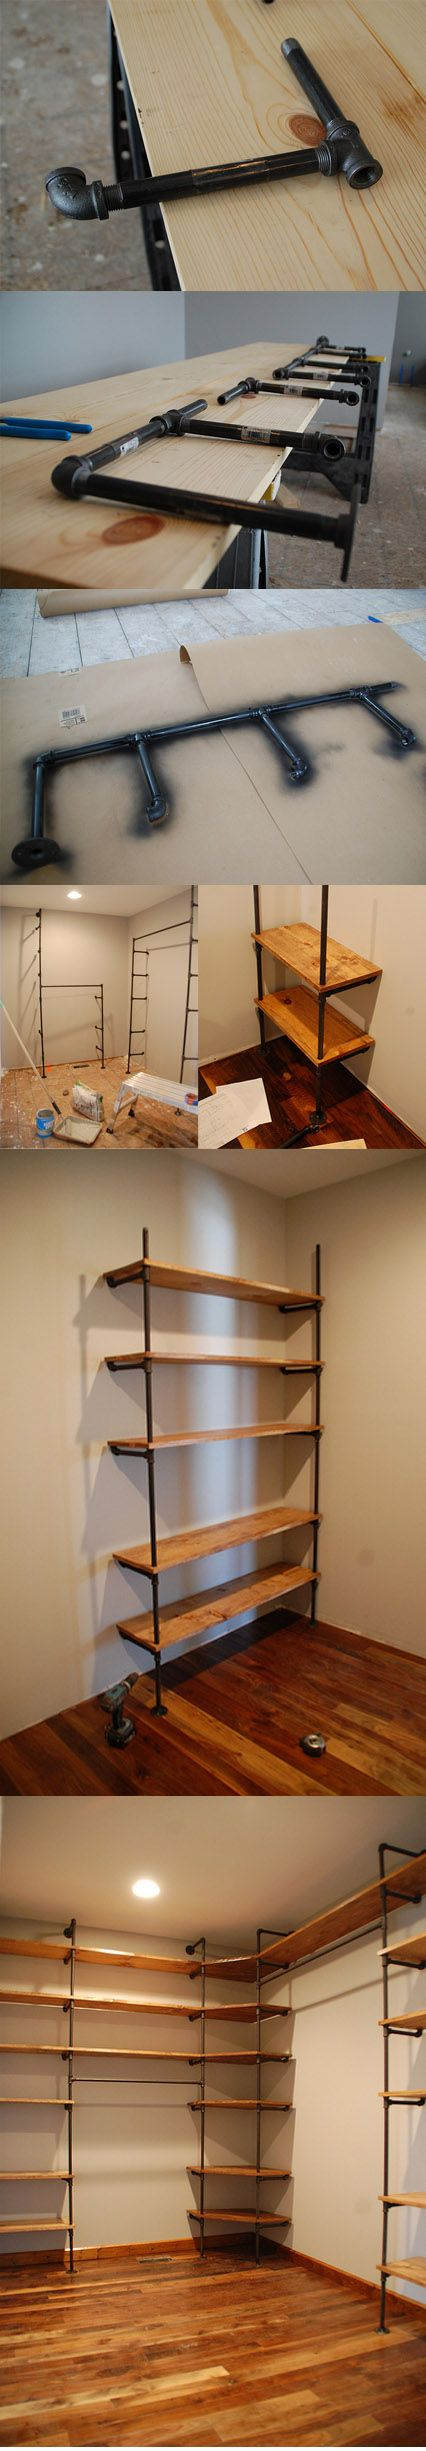 DIY :: piping and wood shelving for closets